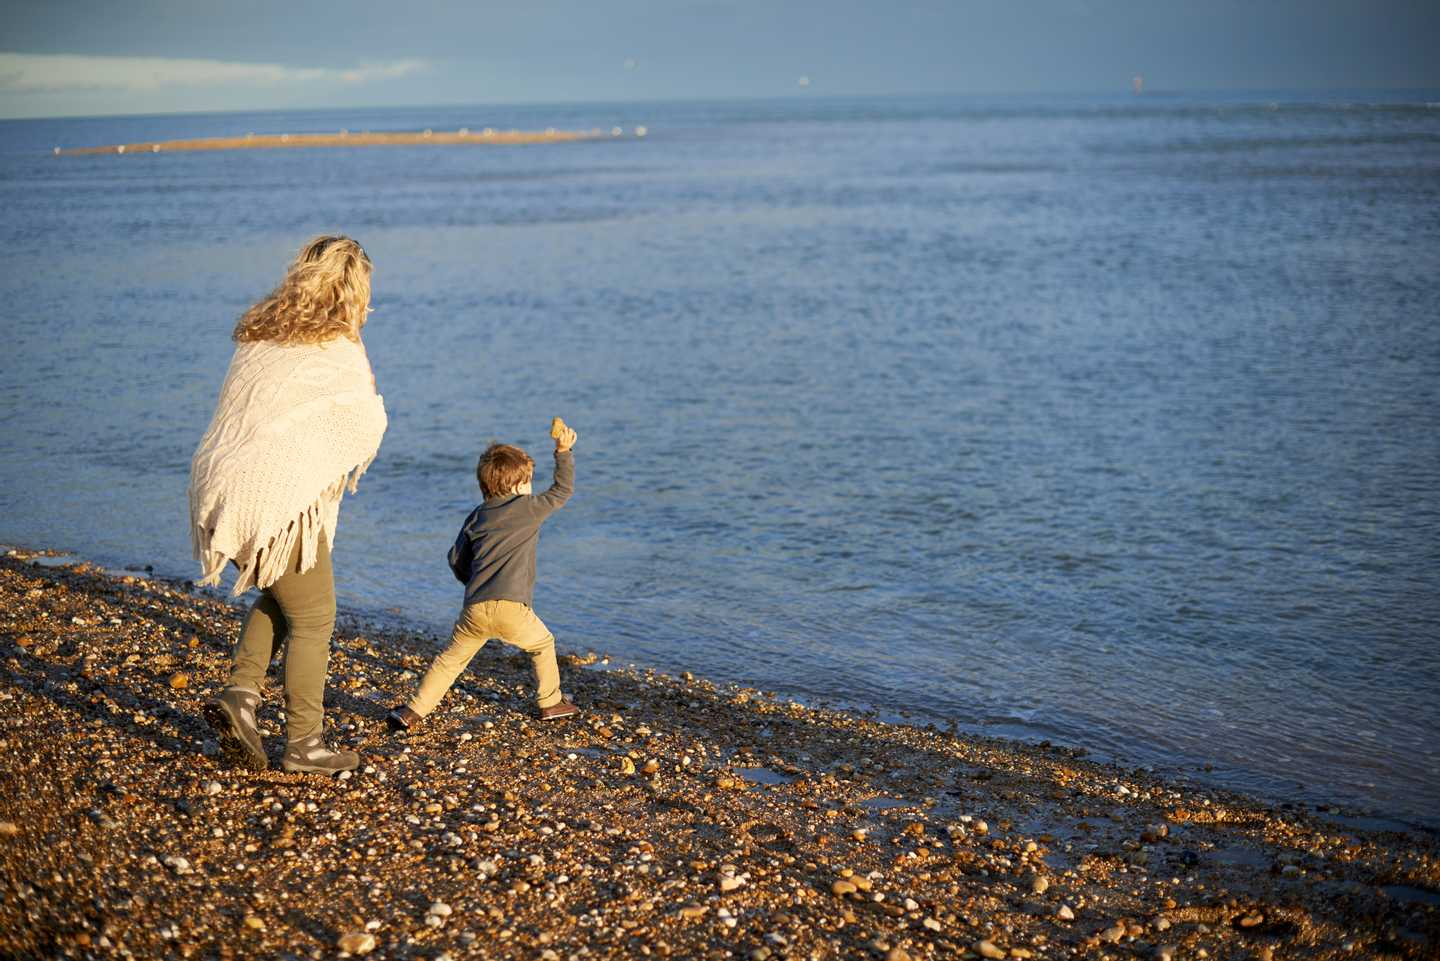 A mother waiting while child runs to sea